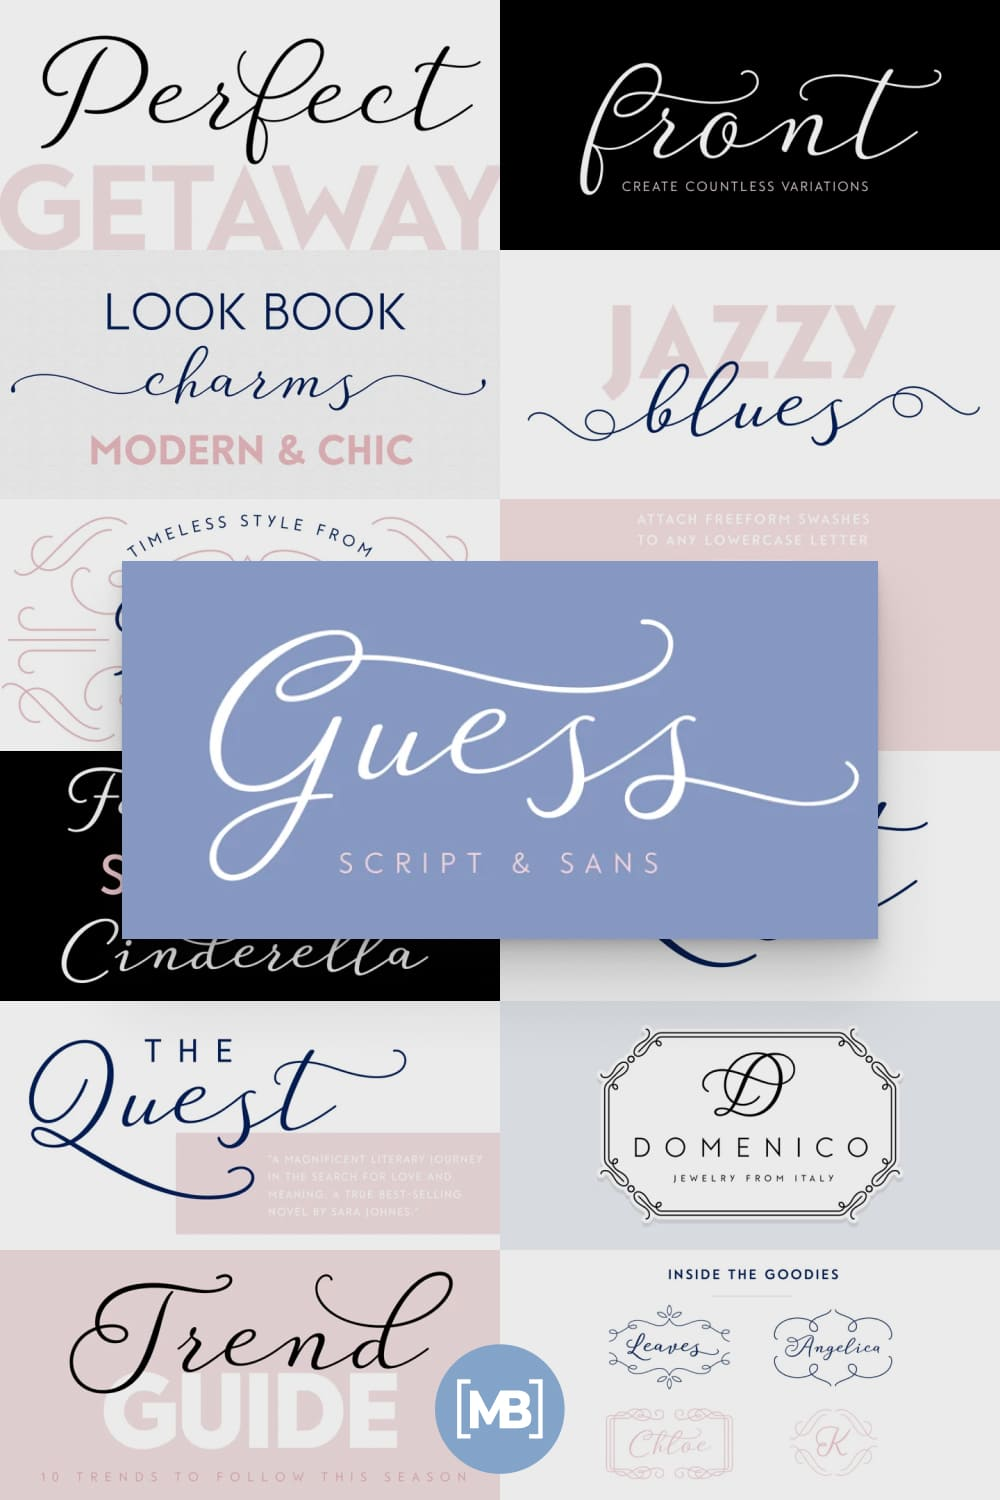 Guess is a versatile, connecting script, designed to convey elegance and style.